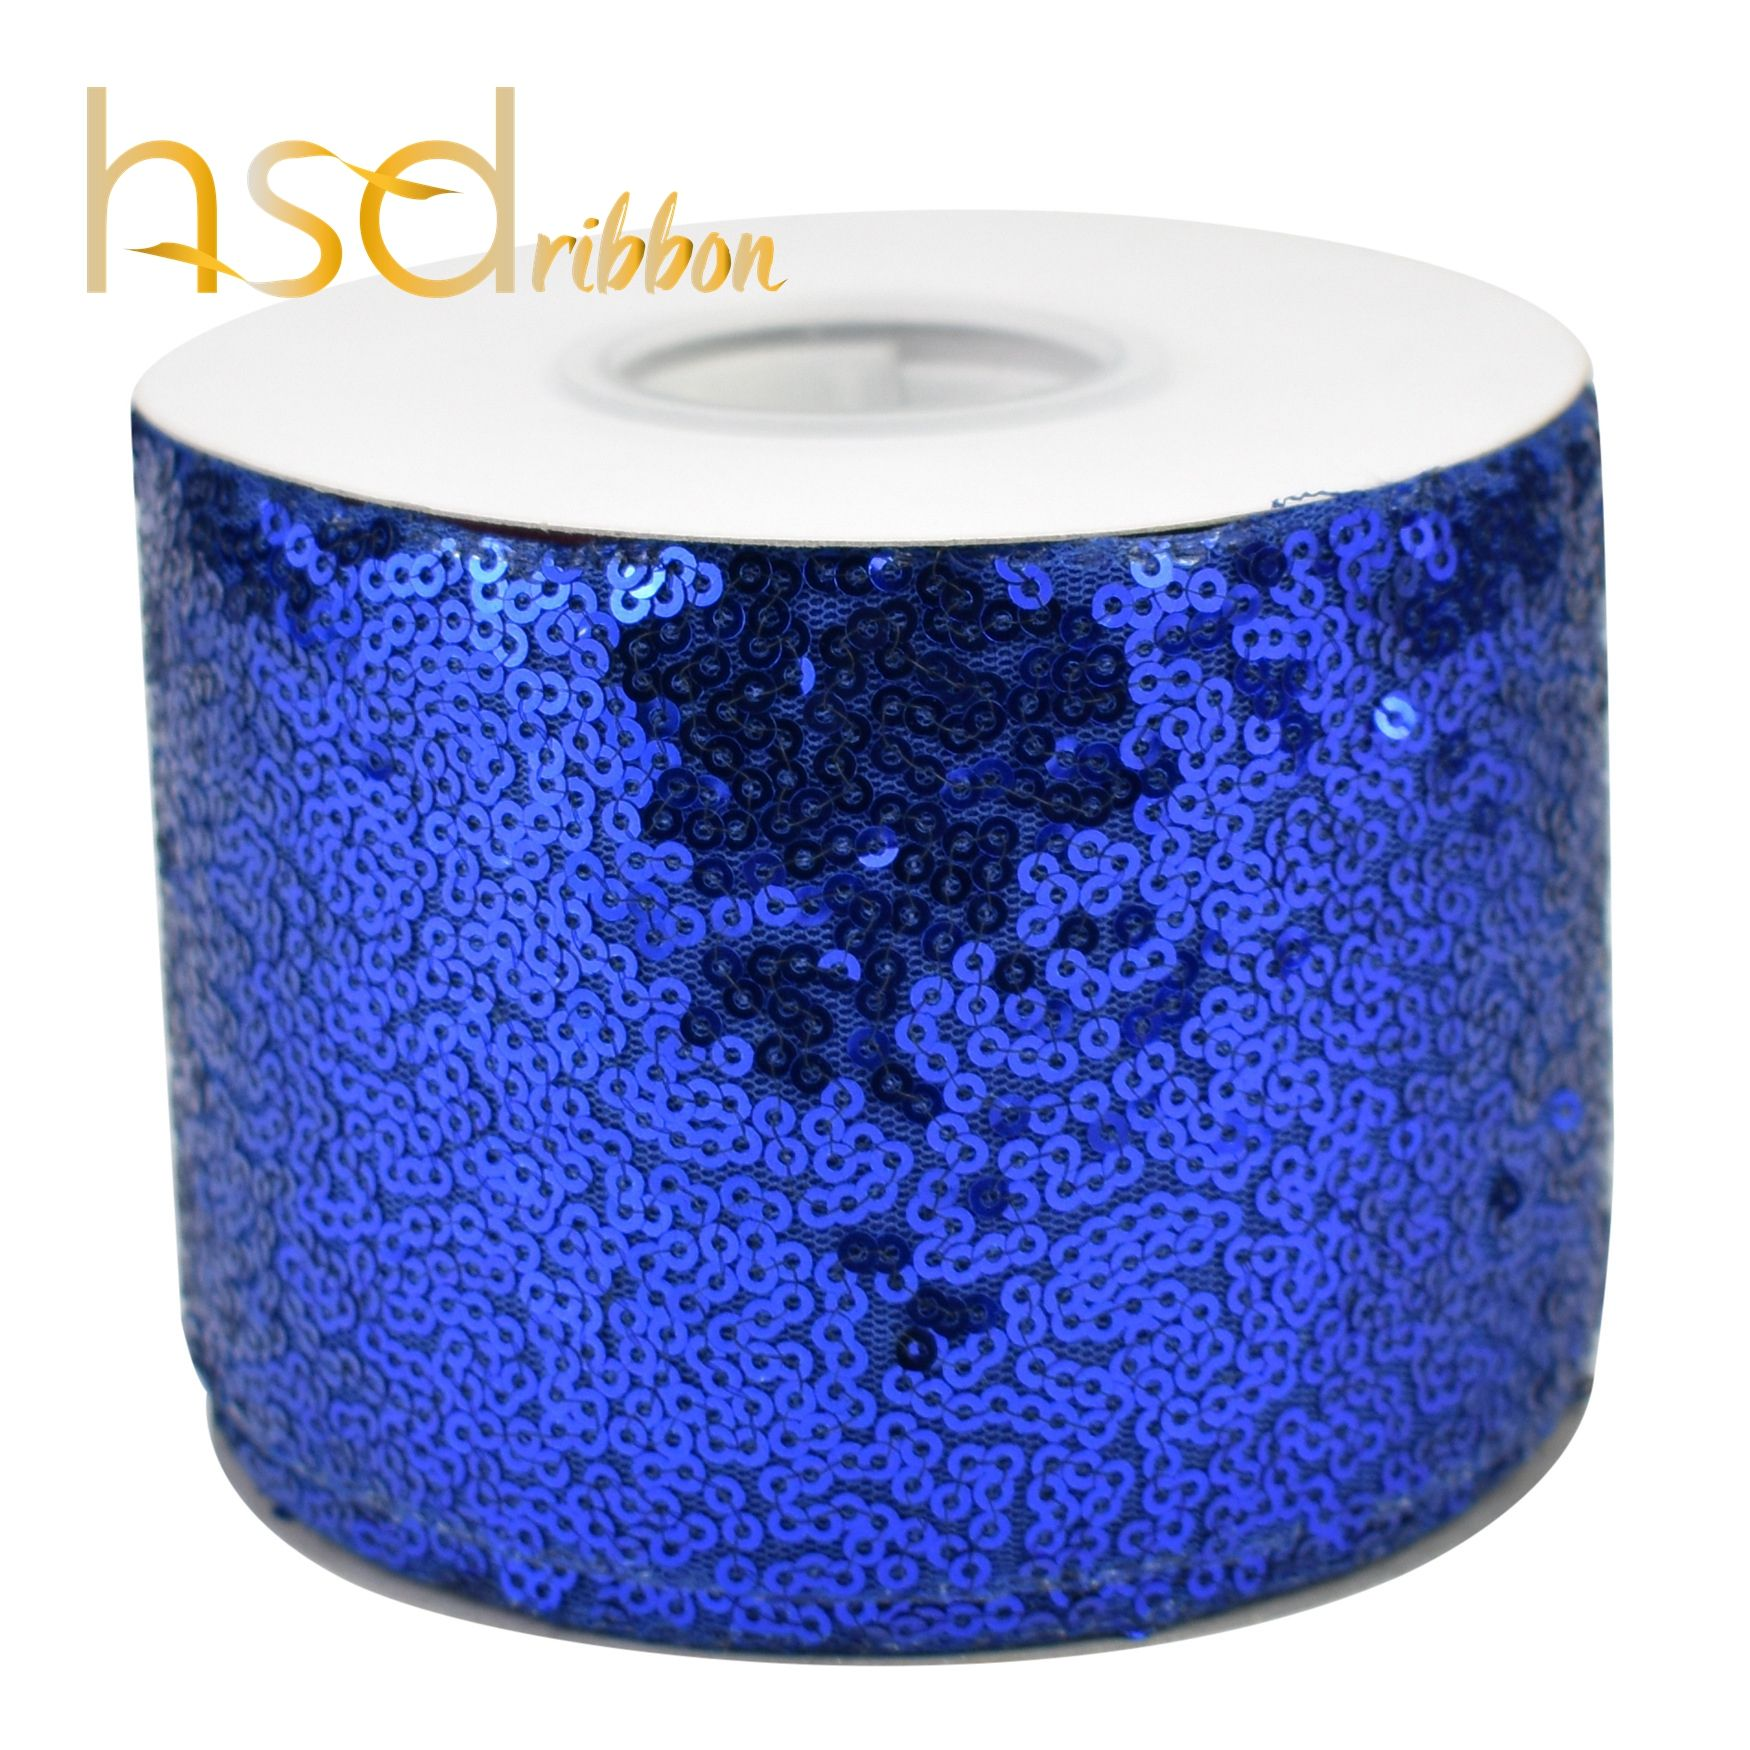 HSDRibbon wholesale 3inch 75mm dark blue Sequin Fabric Glitter Sequin Ribbon